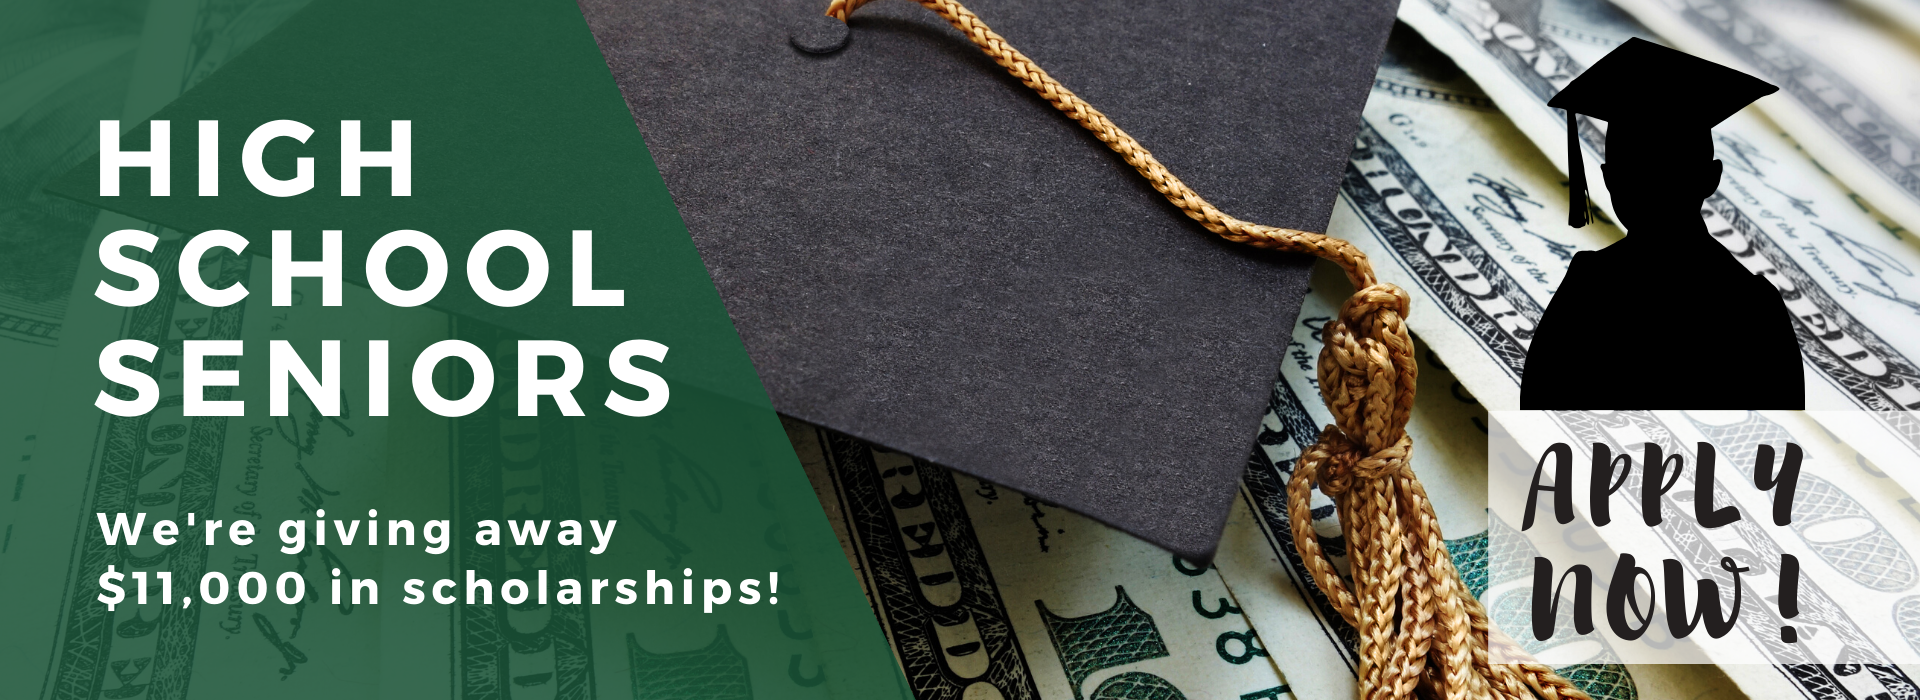 Apply now for $11,000 in scholarships from Midwest Electric!